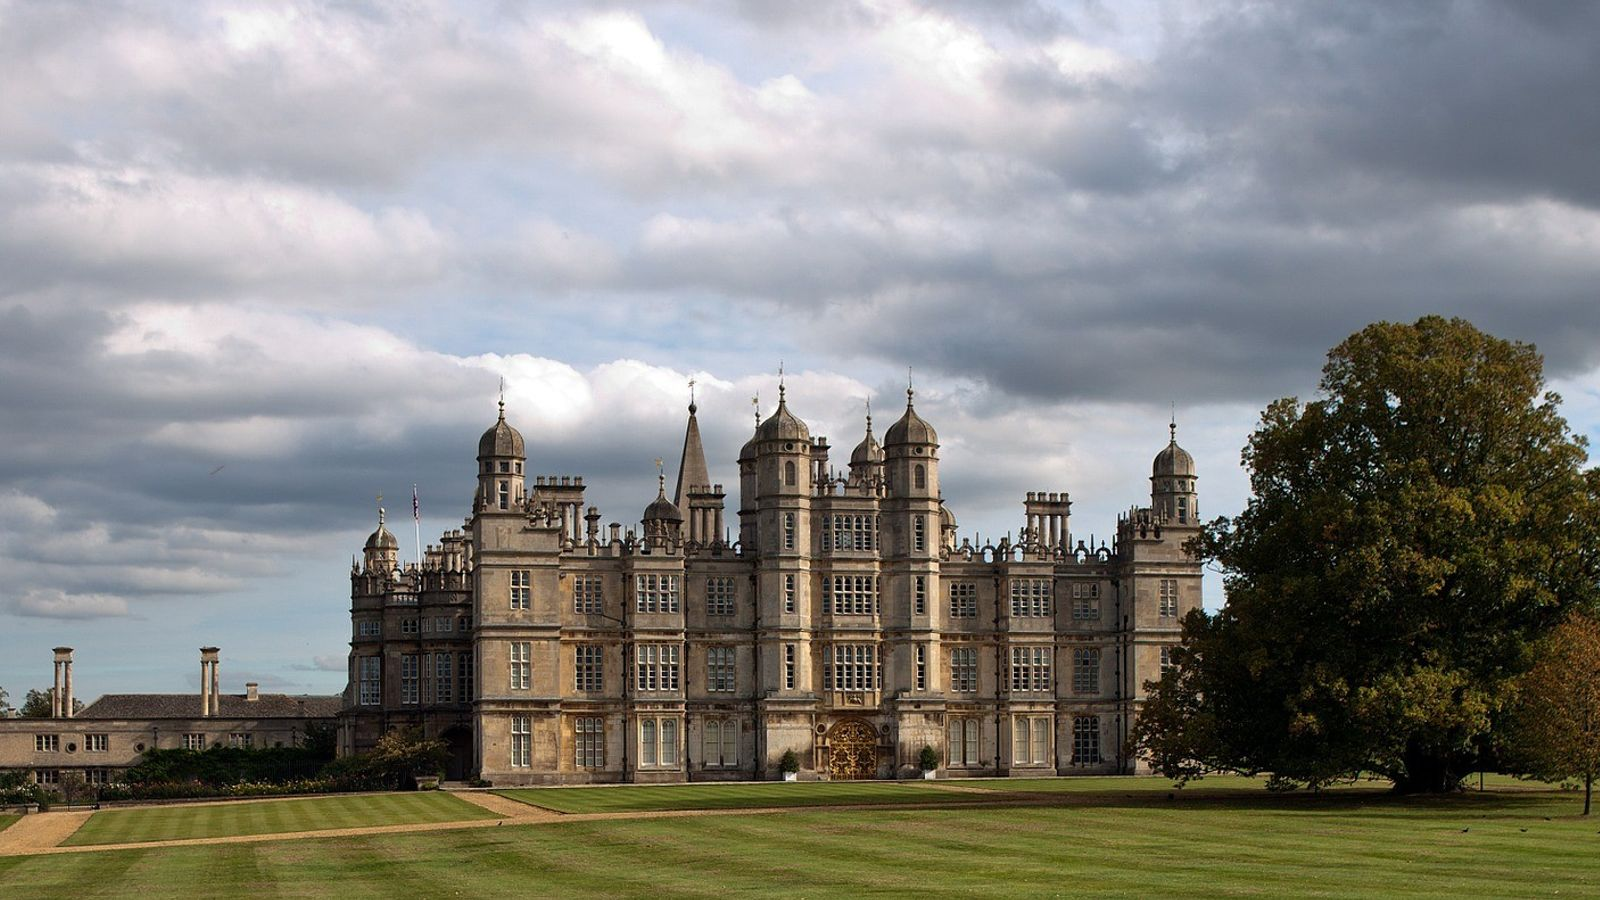 Burghley House holds the famous international horse trials in September every year.